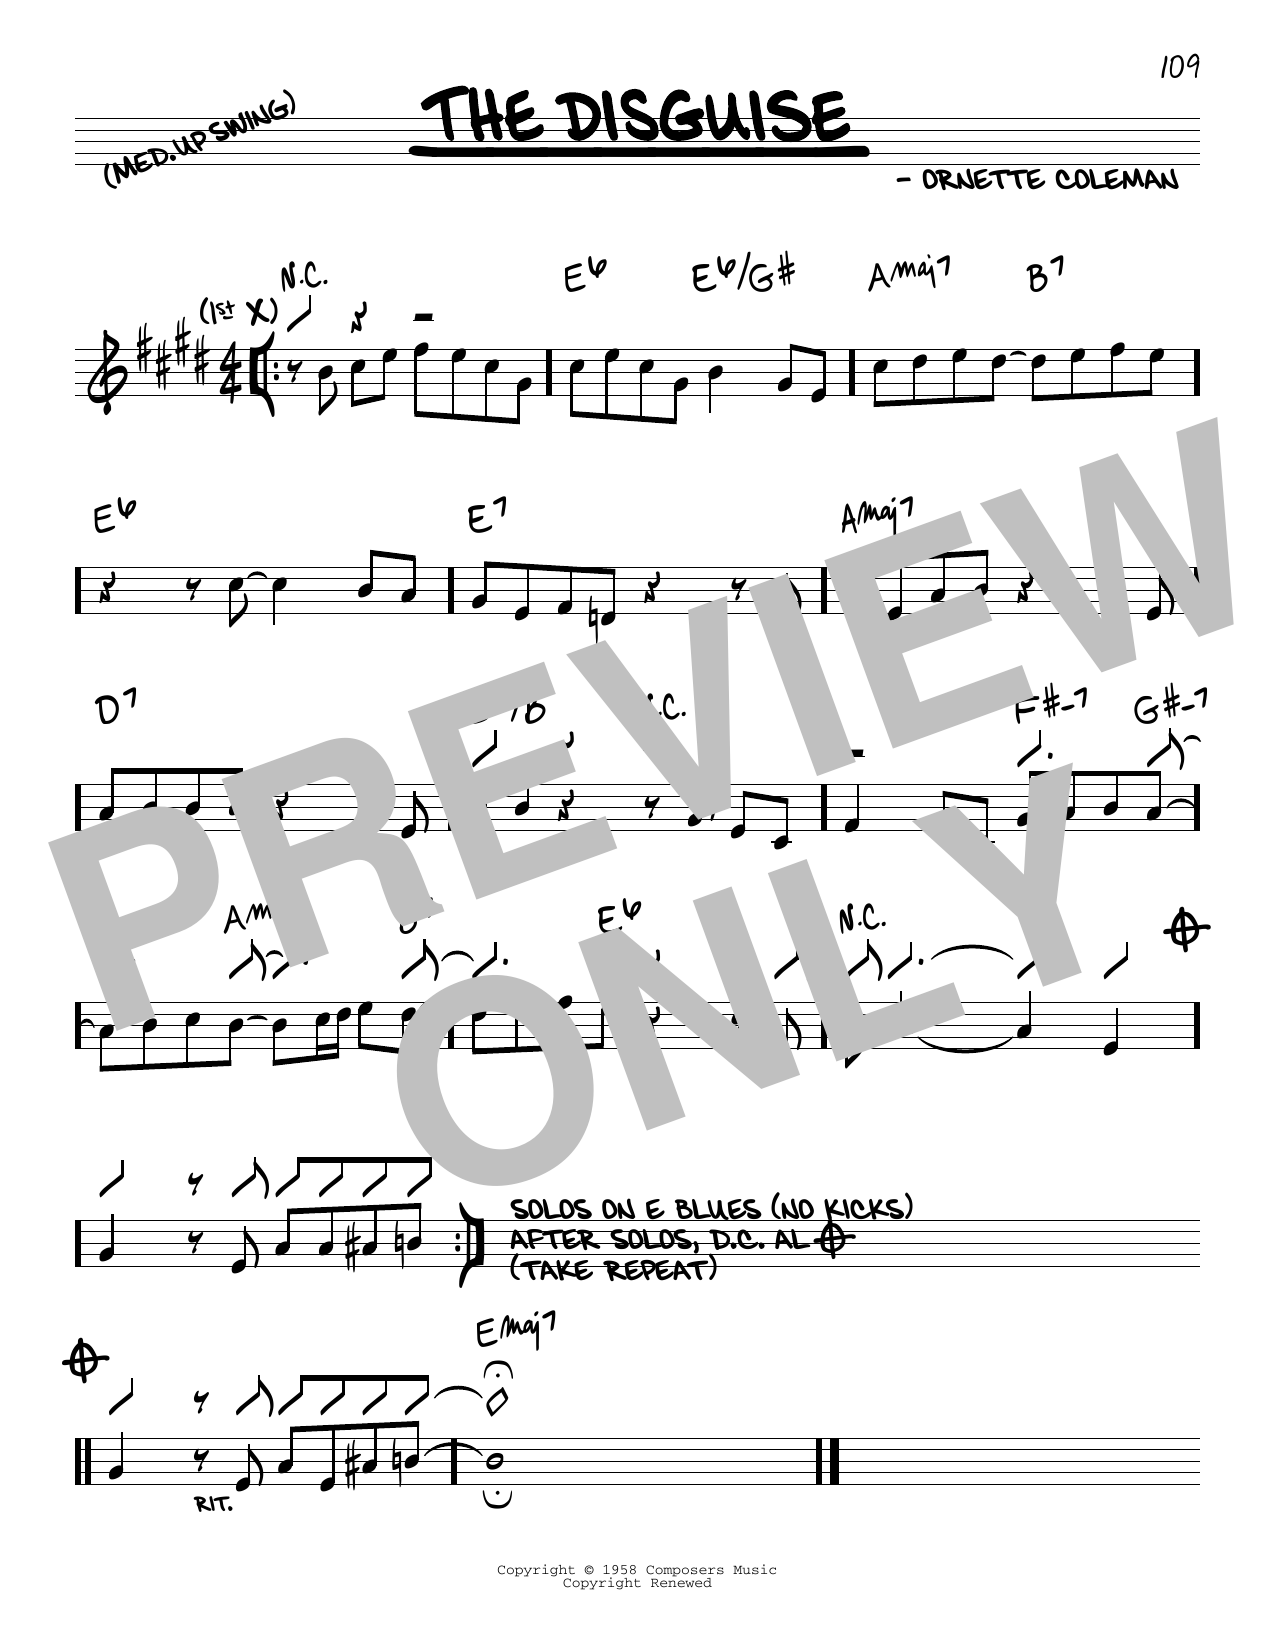 Ornette Coleman The Disguise sheet music notes and chords. Download Printable PDF.